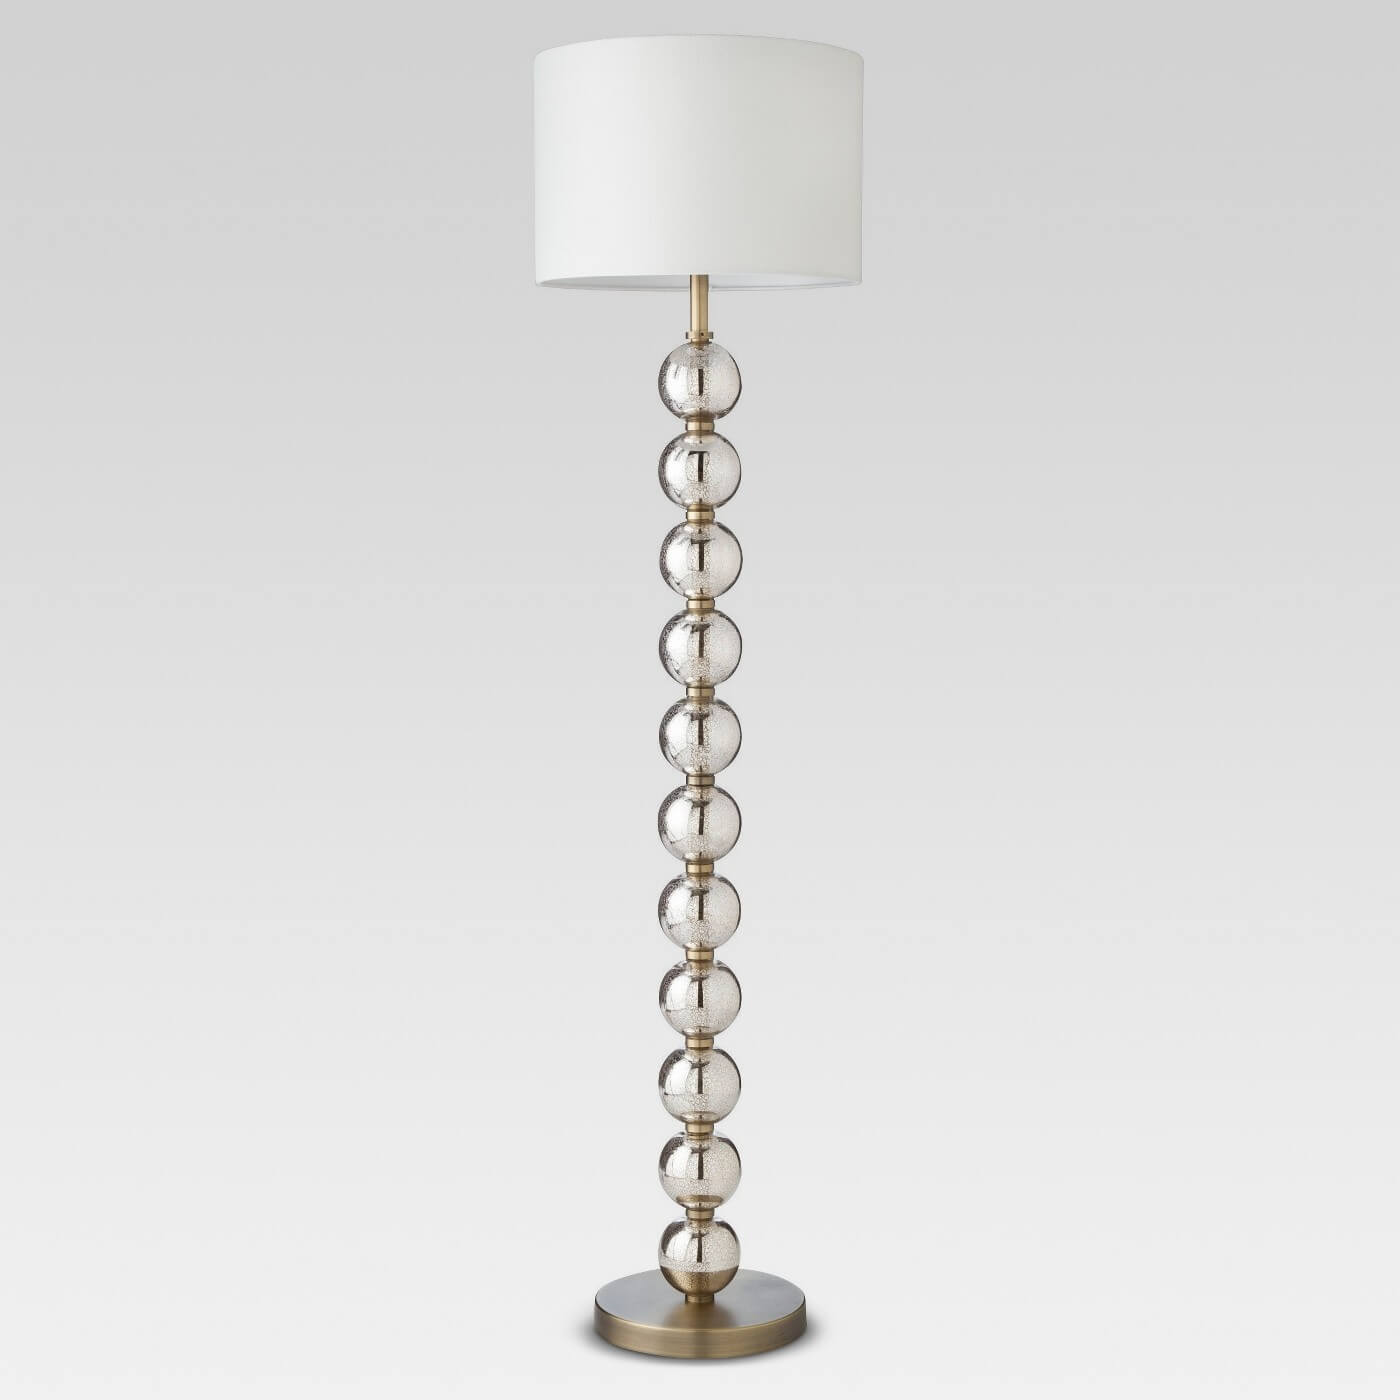 20 Target Floor Lamps That Are Chic